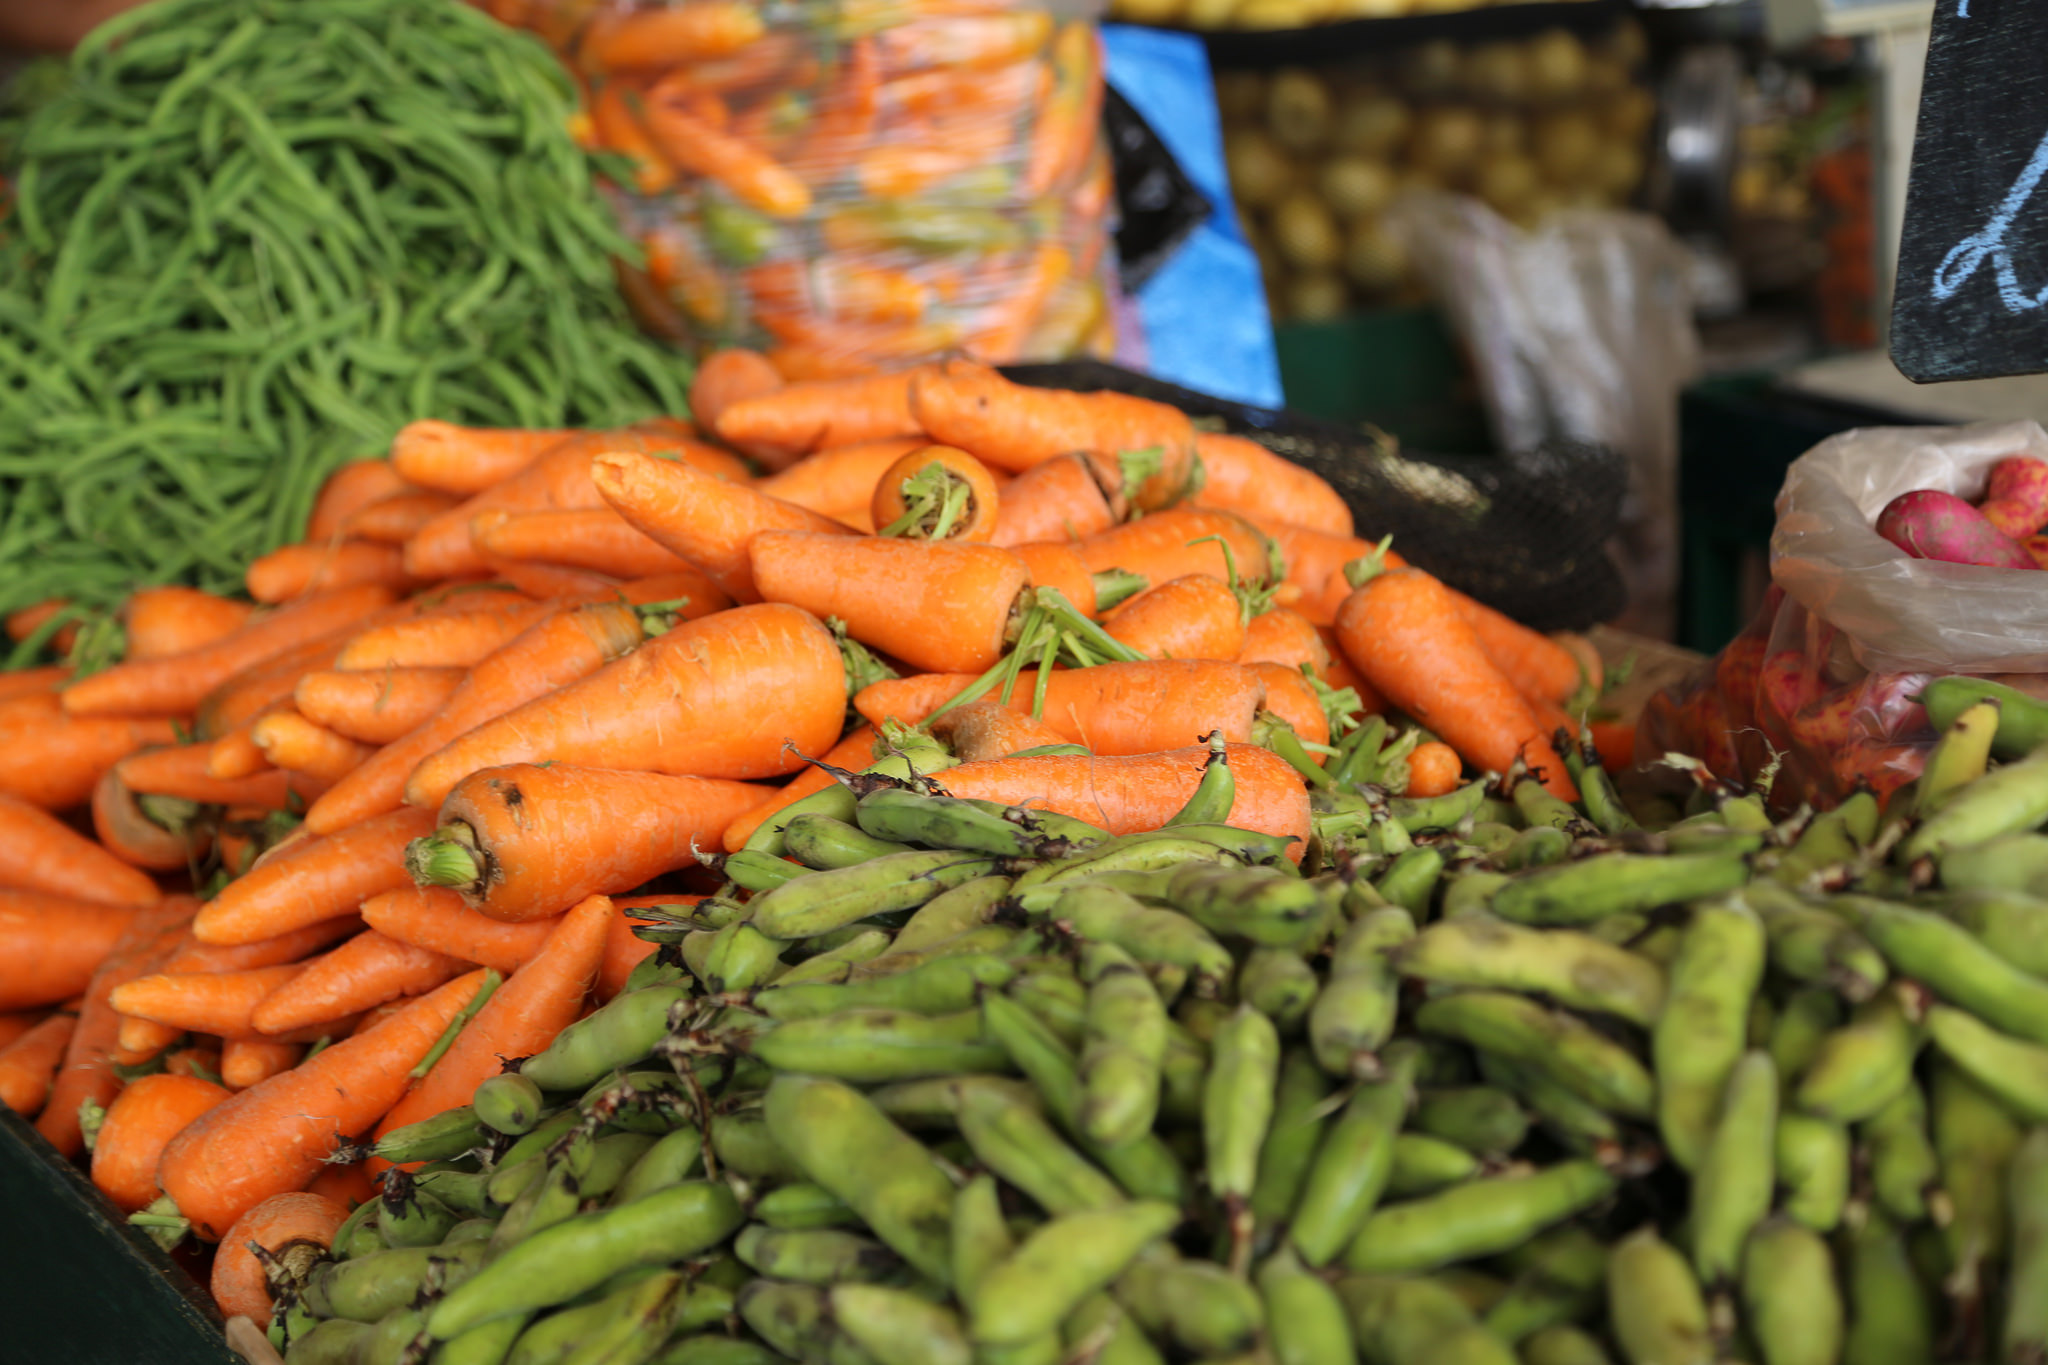 Carrots and peas at a market stall in Peru